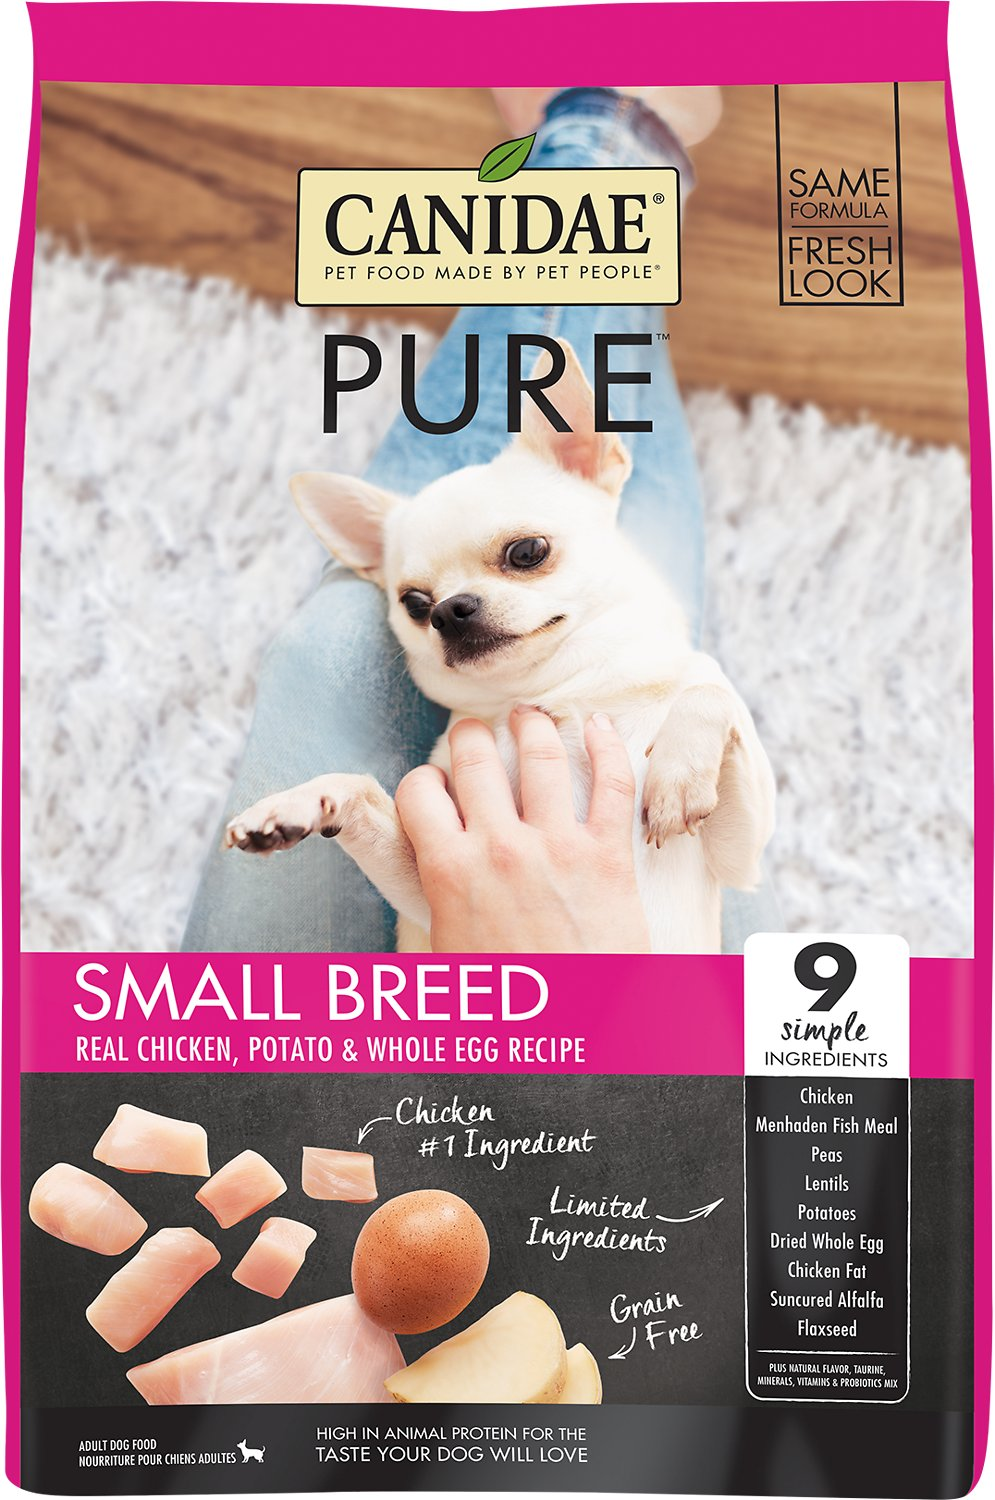 Canidae Dog Food Reviews >> Canidae Grain Free Pure Small Breed Real Chicken Potato Whole Egg Recipe Dry Dog Food 12 Lb Bag